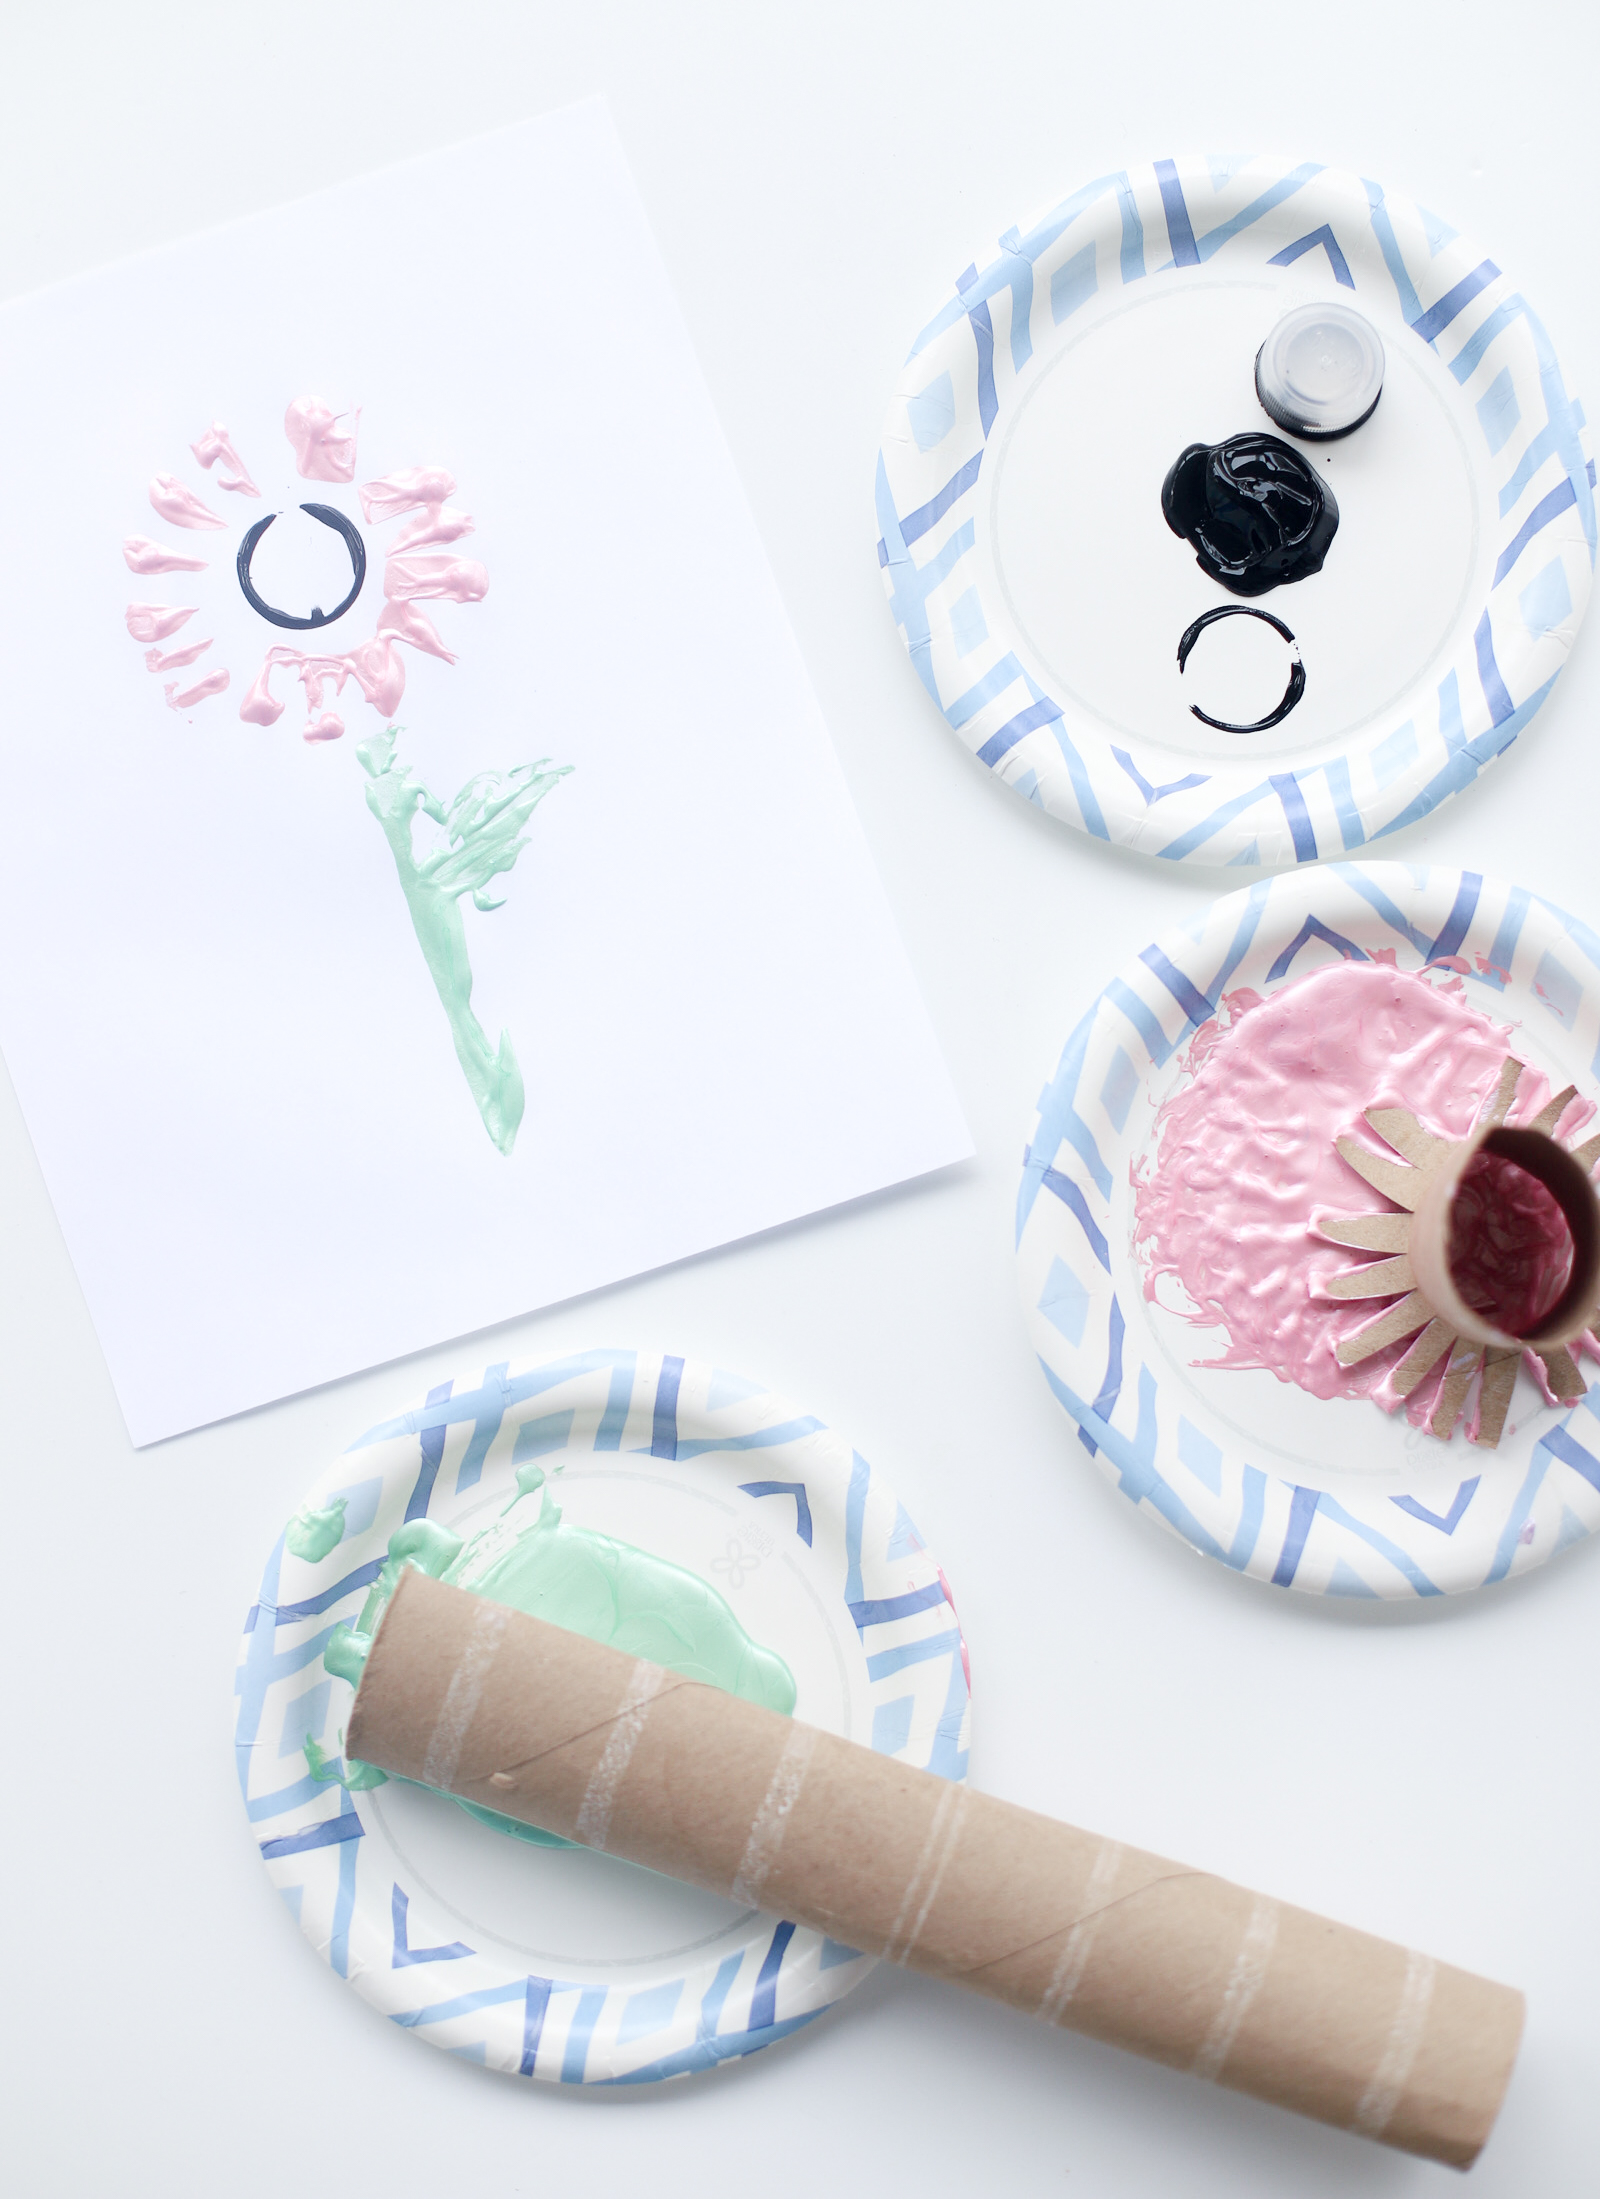 Make adorable stamp flower works of art using recycled materials like toilet paper rolls, paper towel rolls, and plastic bottle caps. This toilet paper flower stamping craft is fun for kids of all ages and the end result makes a perfect gift! | @glitterinclexi | GLITTERINC.COM